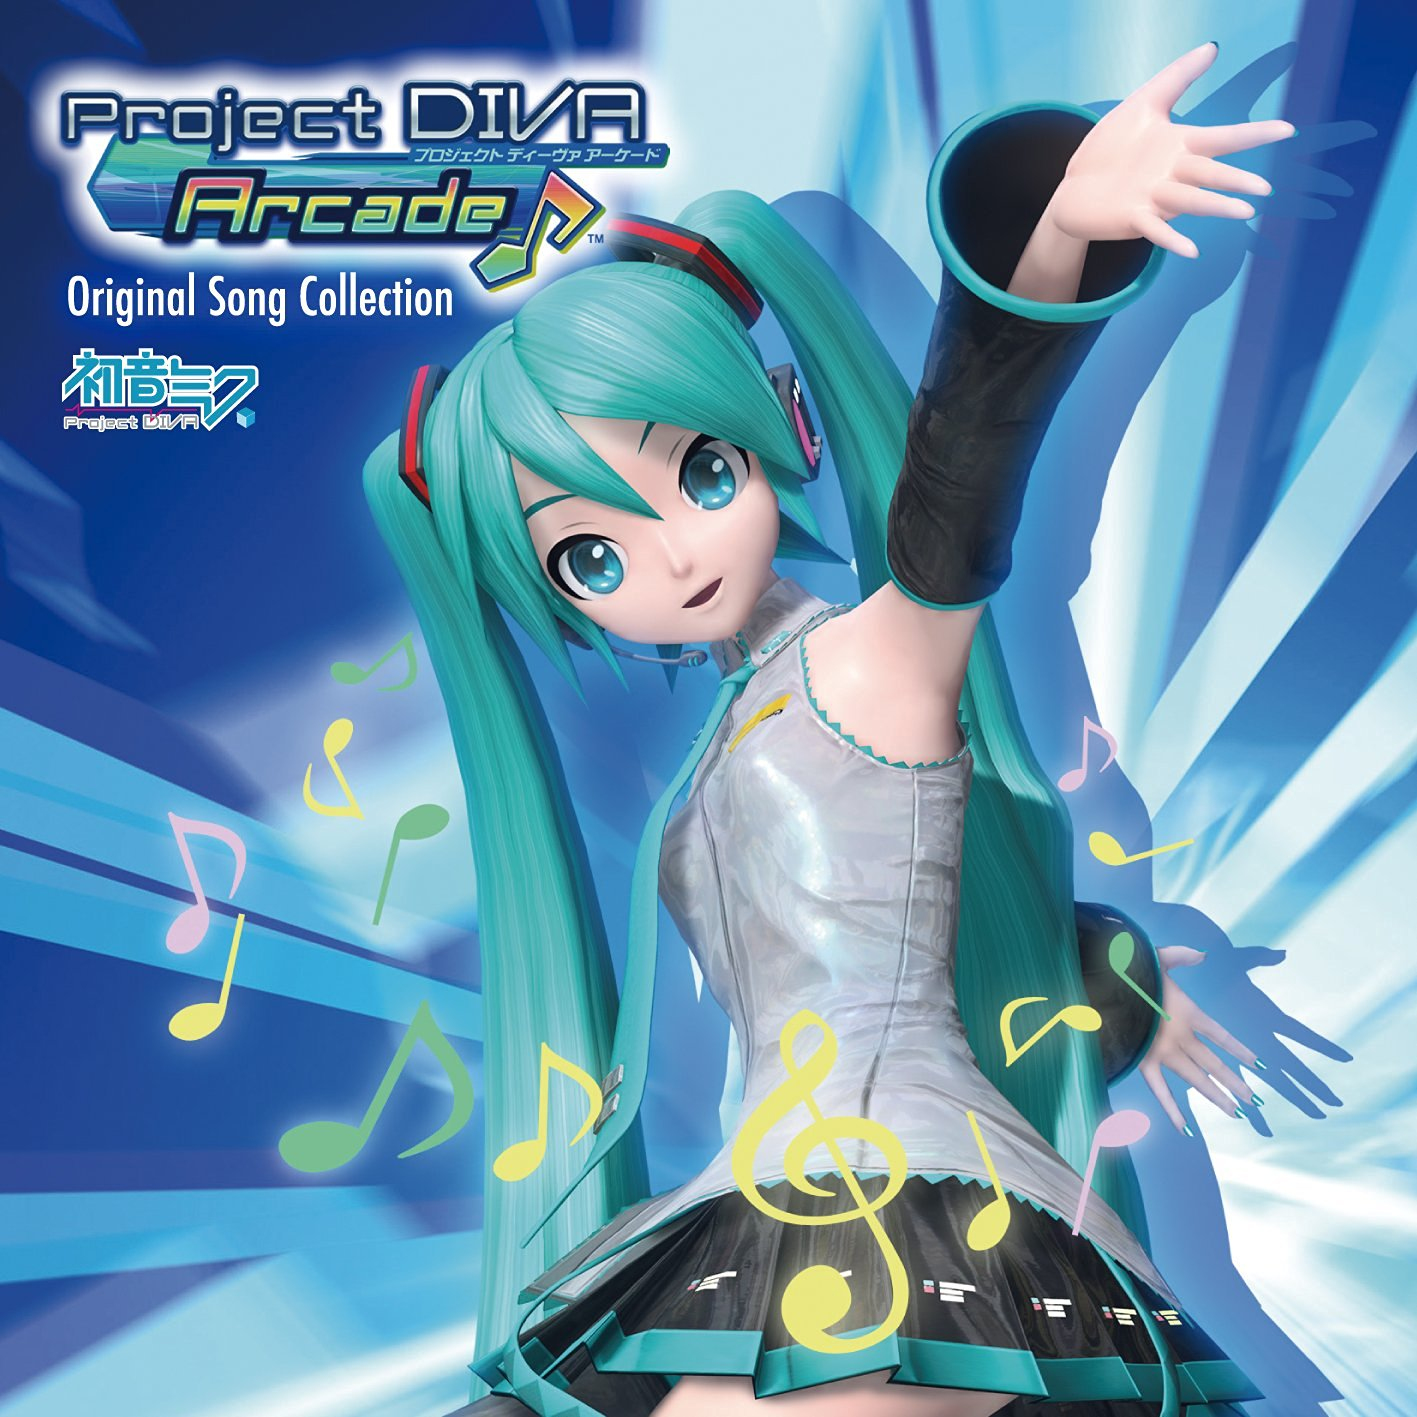 Diva 1 2 3 Nouveau Image Hatsune Miku ‐ Project Diva‐2nd Nonstop Mix Collection 初音ミク